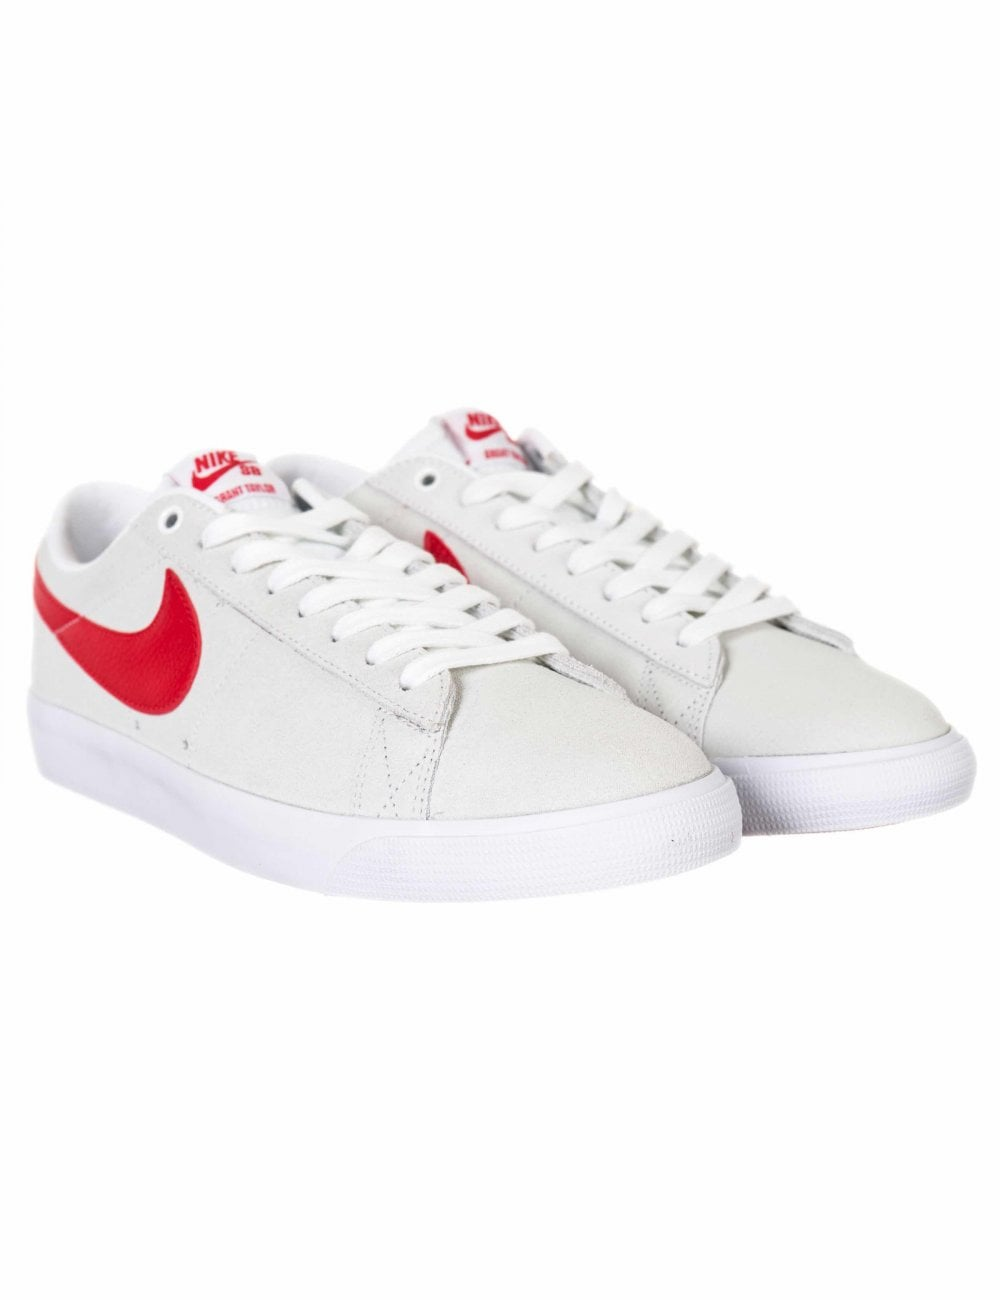 reputable site a1920 f3c11 Zoom Blazer Low GT Shoes - White/University Red